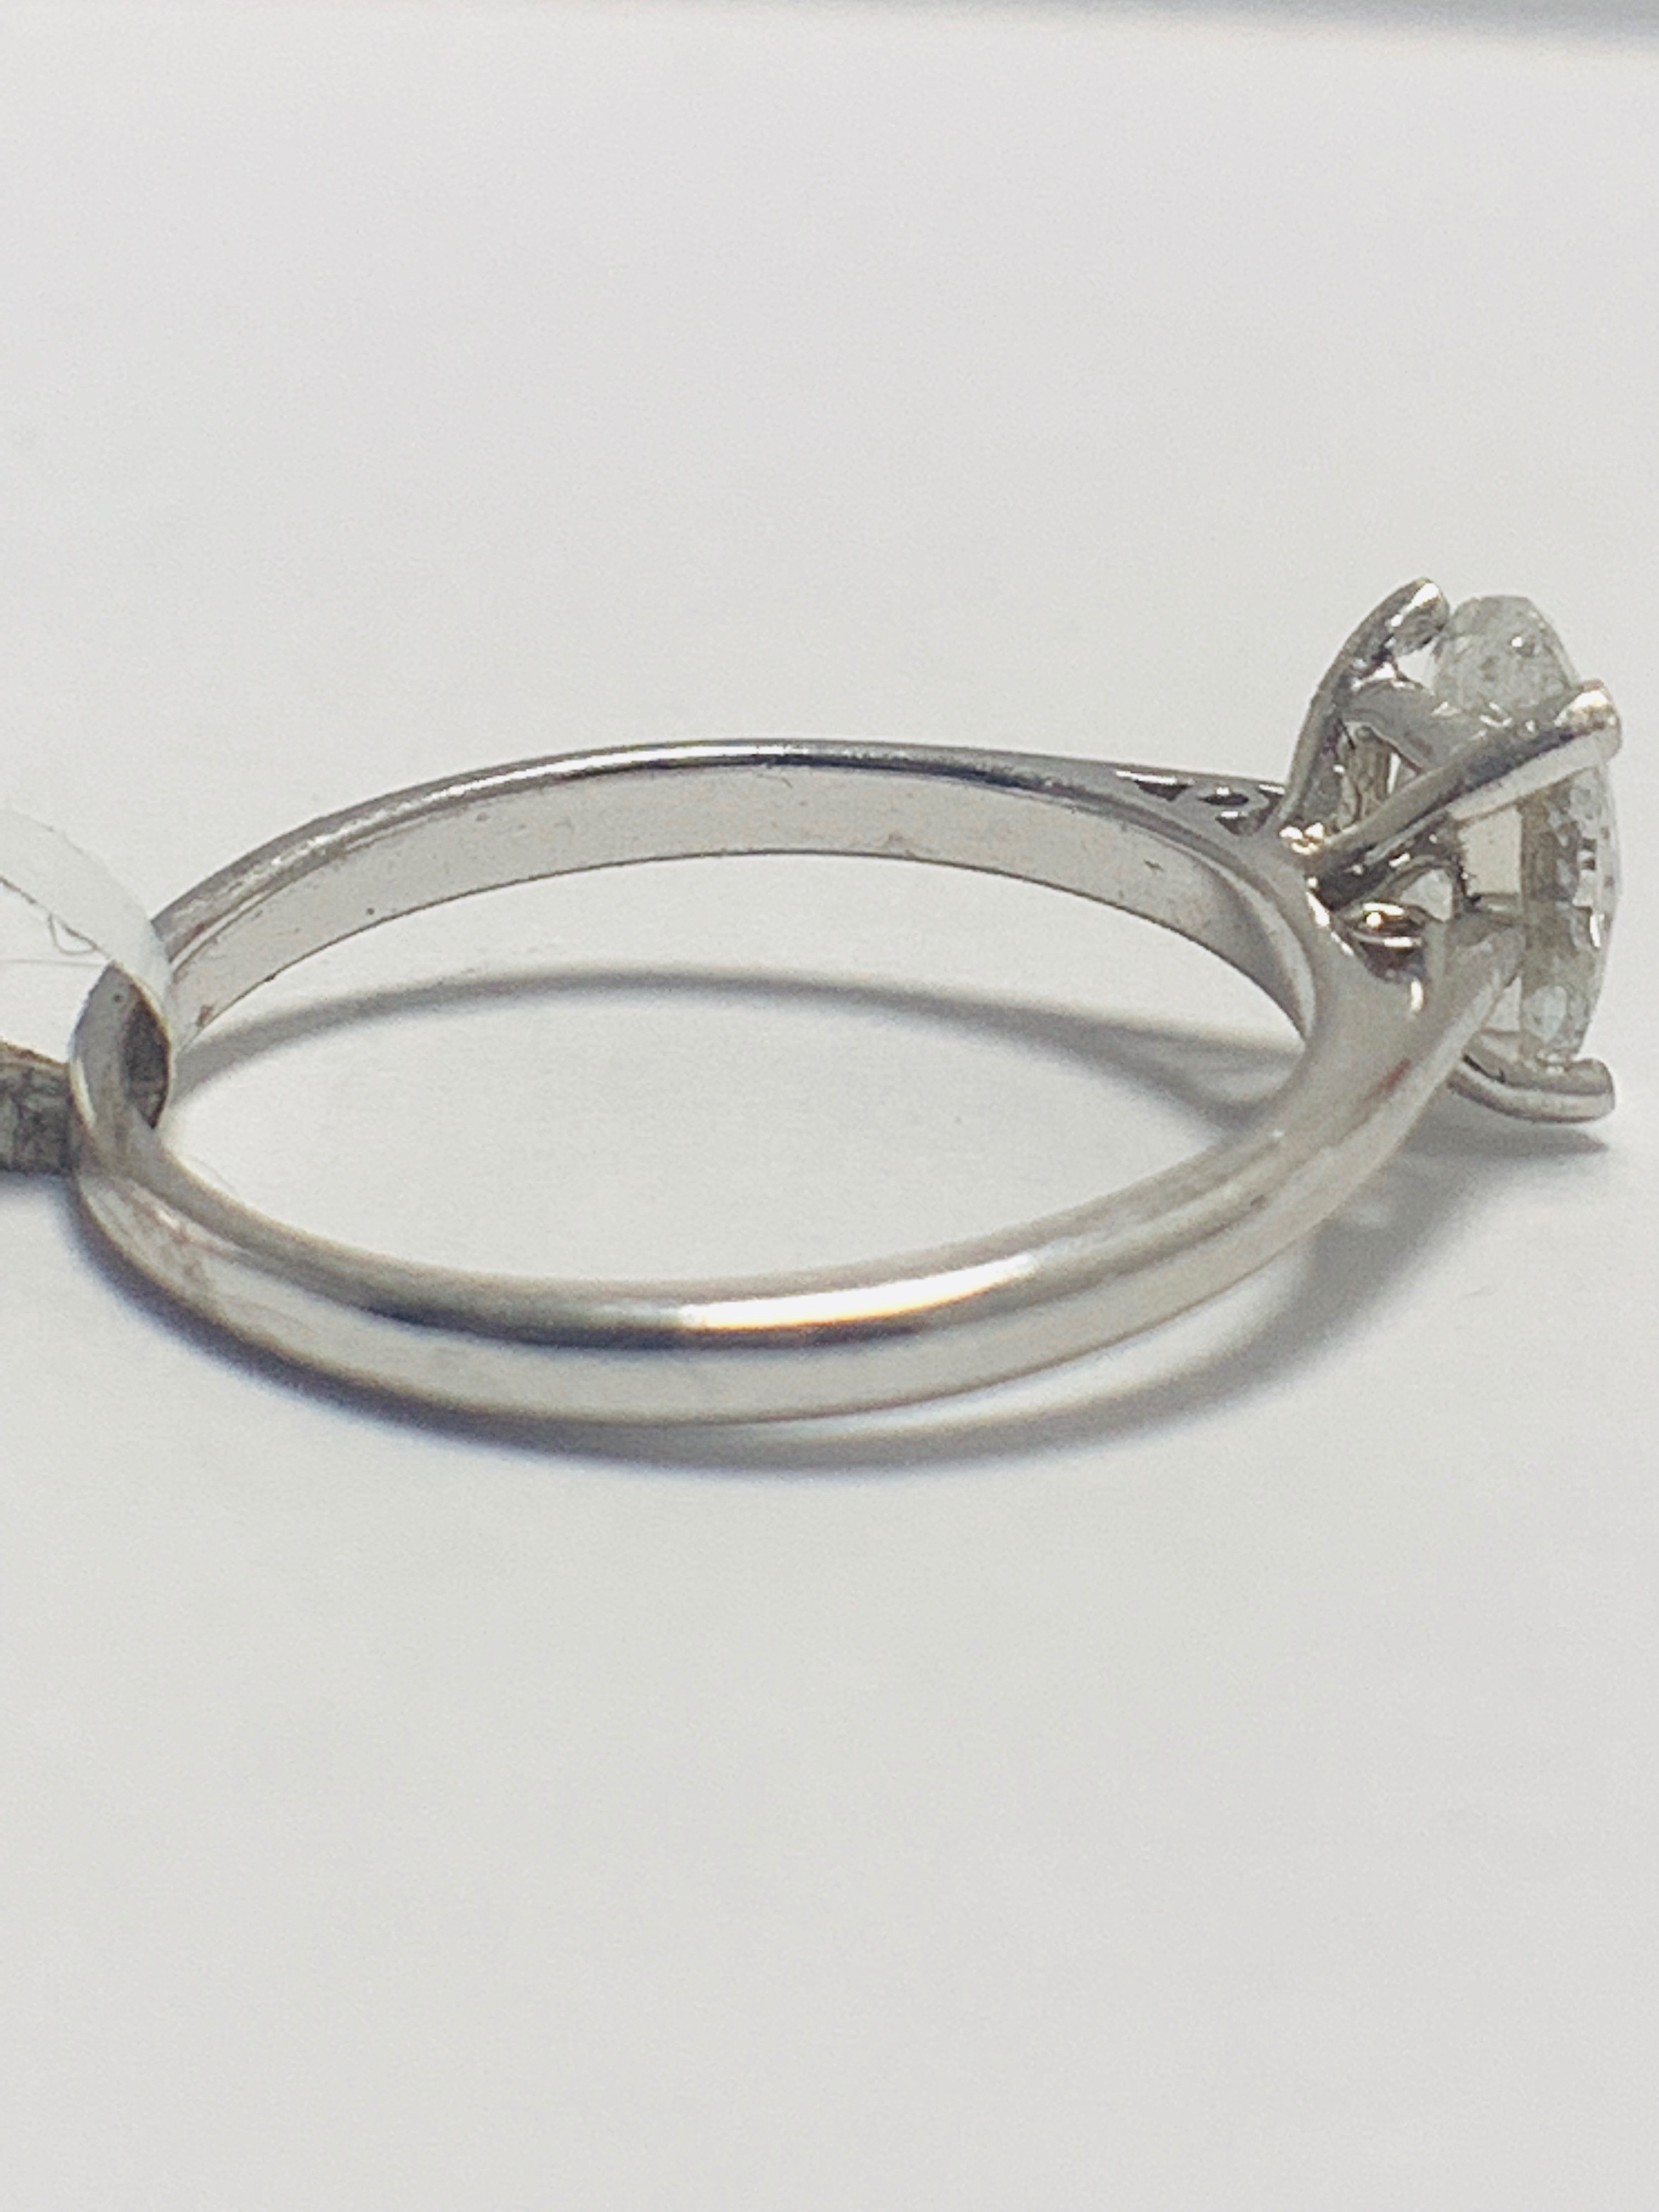 1ct Oval diamond solitaire platinum ring - Image 4 of 9